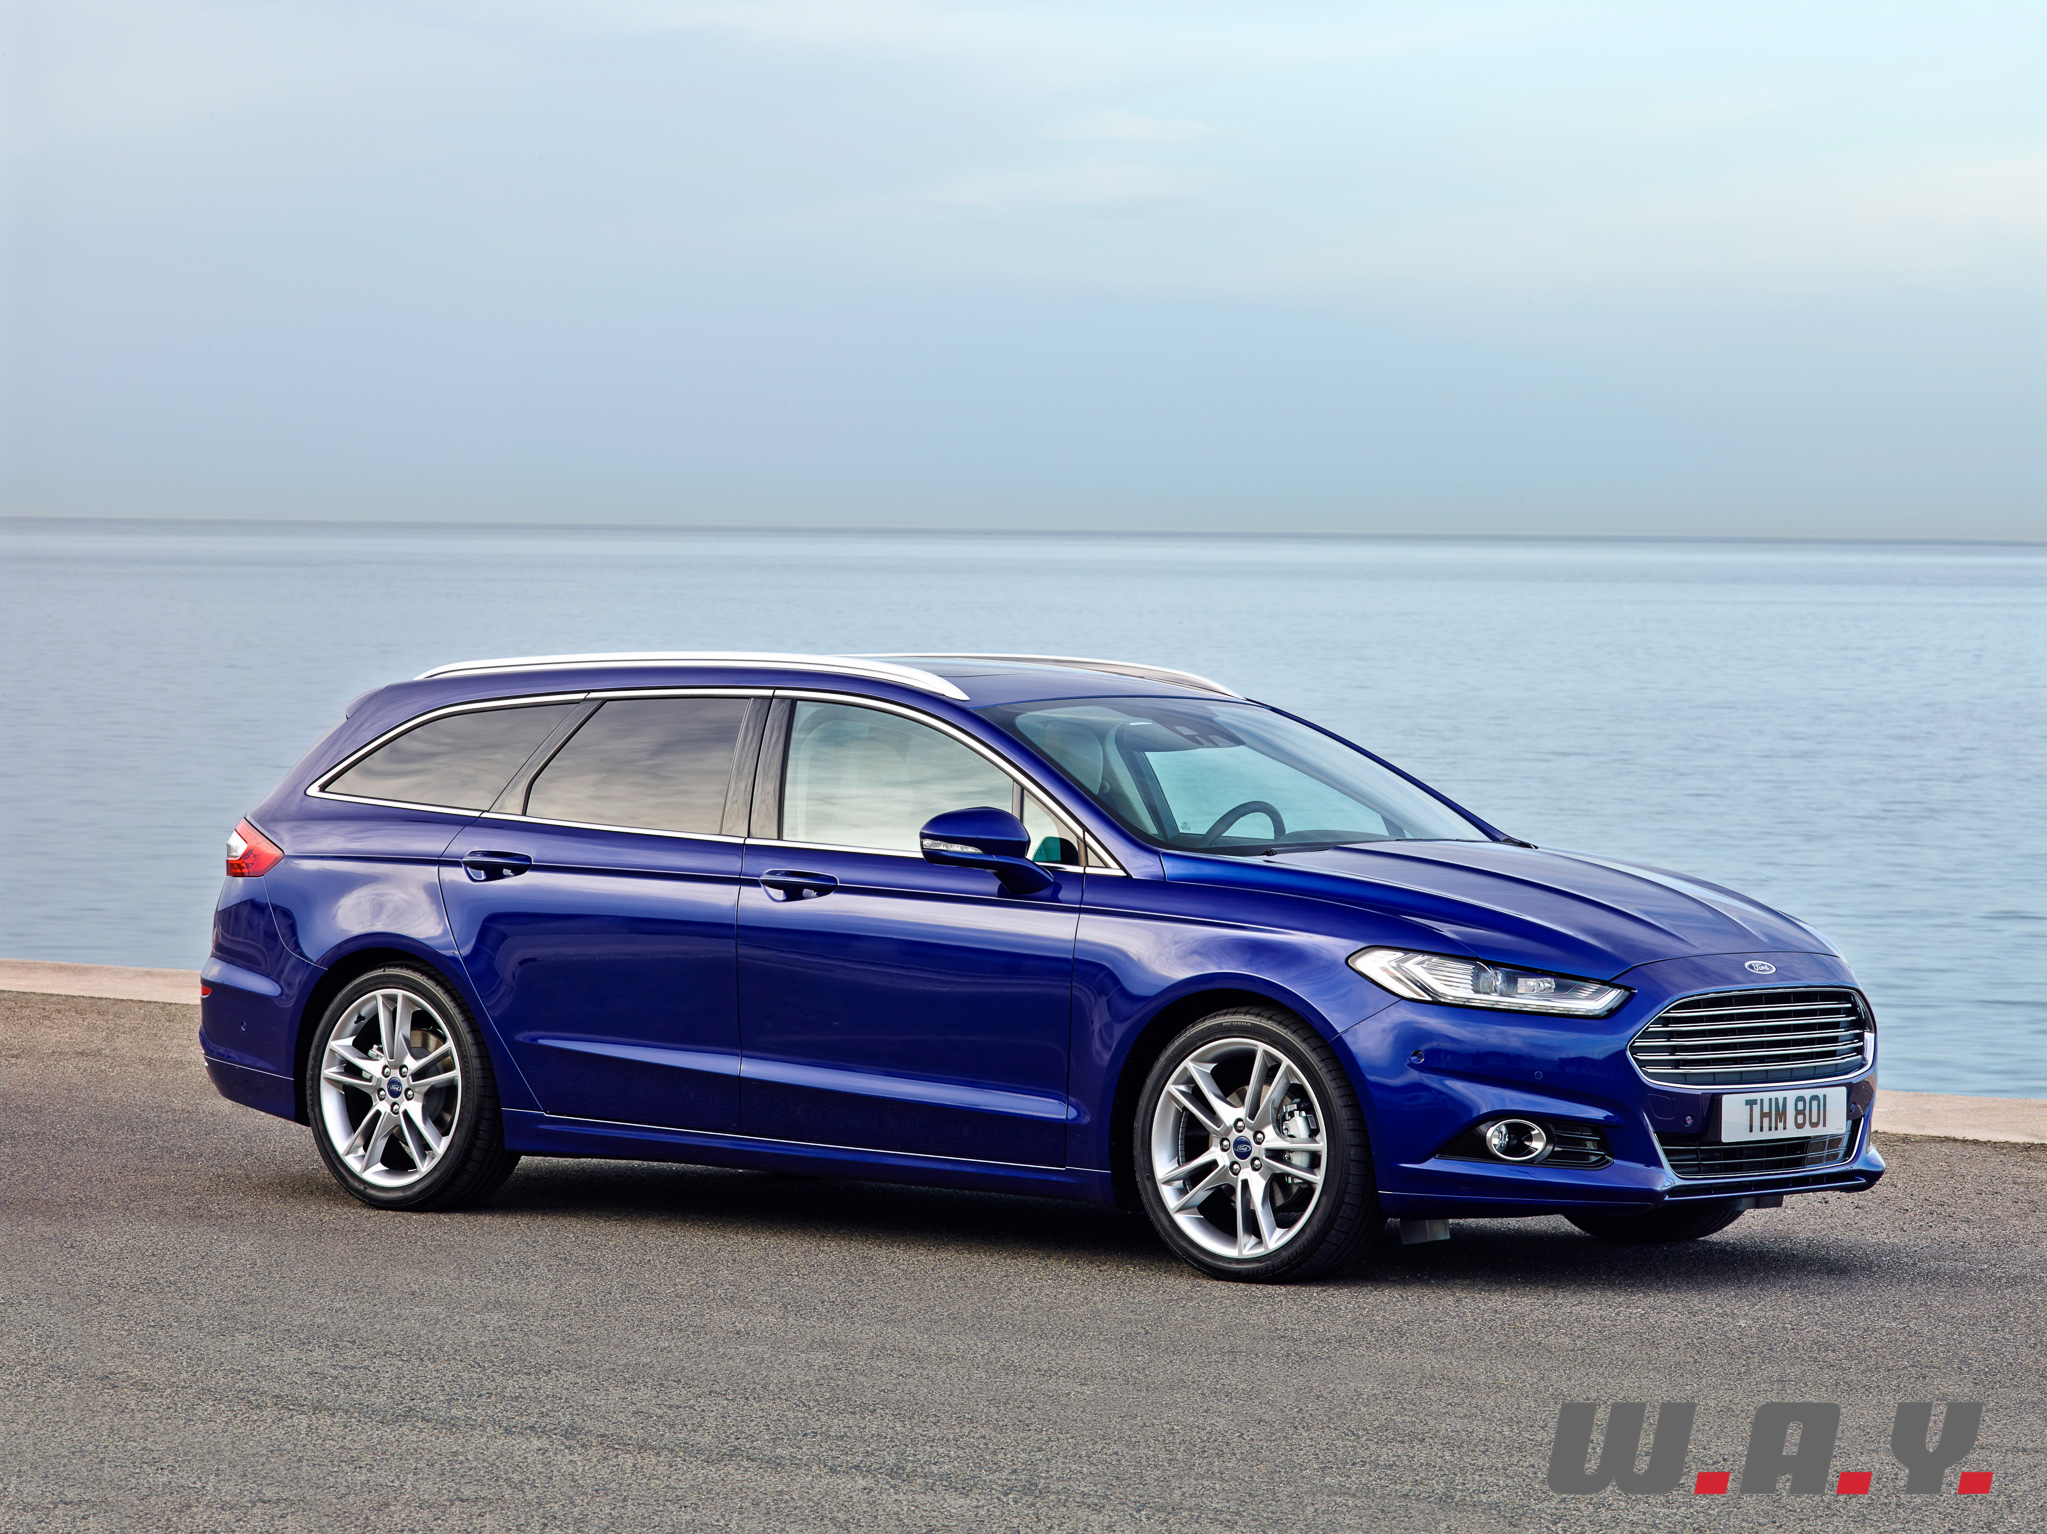 FordMondeo-21